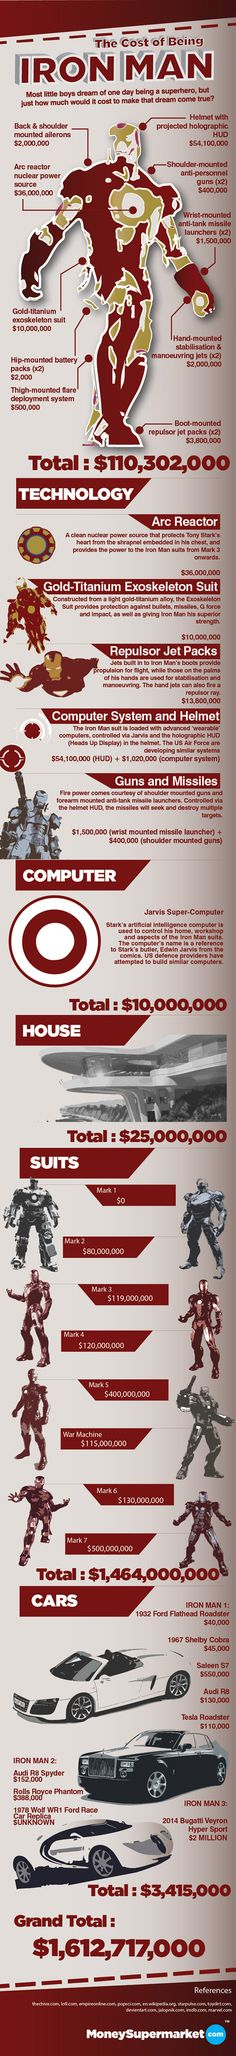 Here's How Much It Would Cost to Be Iron Man - A great little cost analysis of the true cost of being Iron Man!      Link found at : http://gizmodo.com/5929926/heres-how-much-it-would-cost-to-be-iron-man#